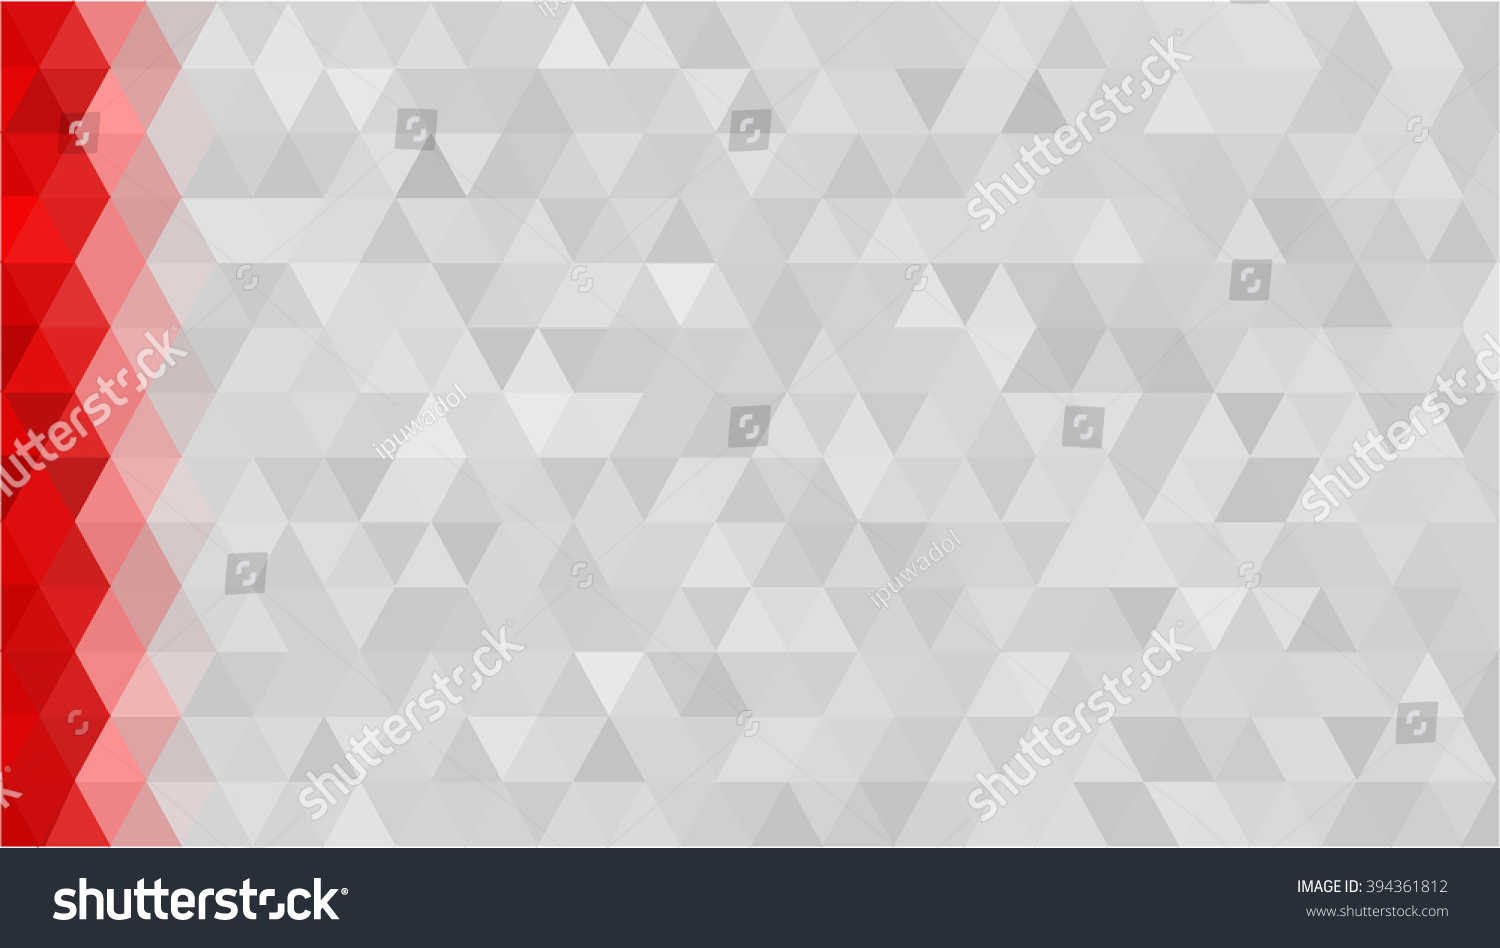 Red Gray Low Poly Background Diamond 394361812